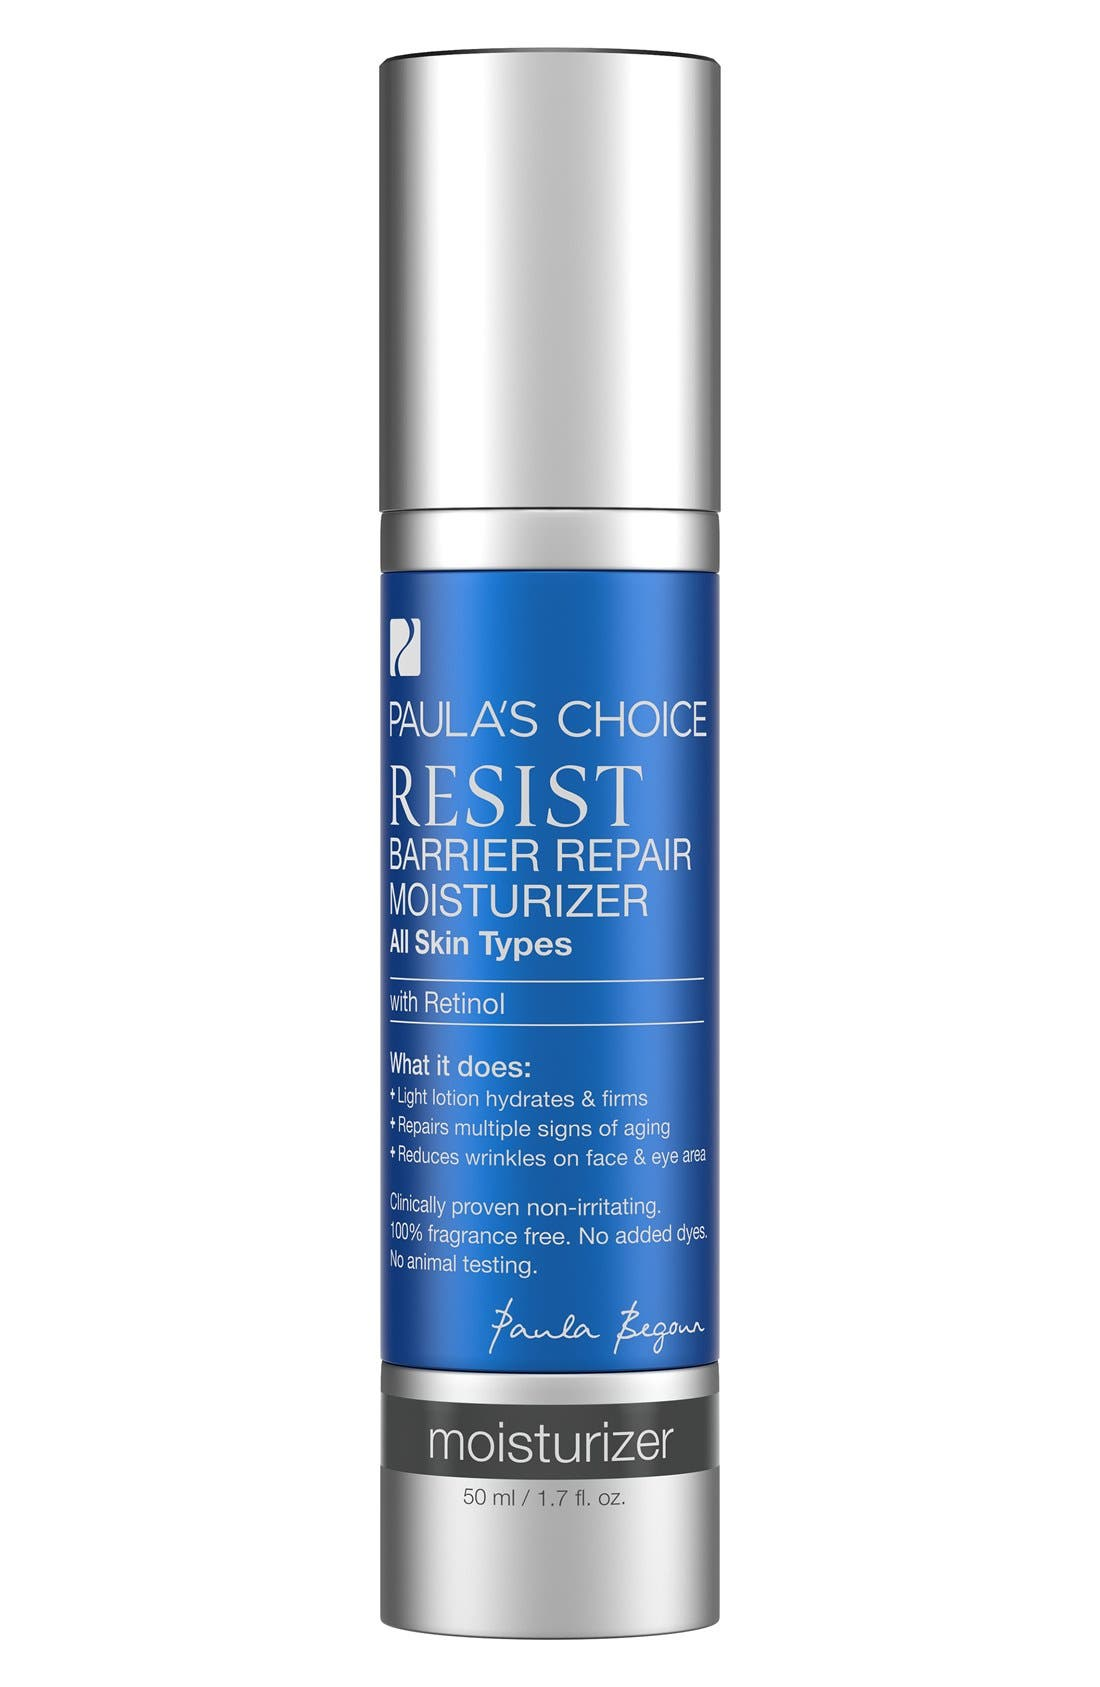 Paula's Choice Resist Barrier Repair Moisturizer